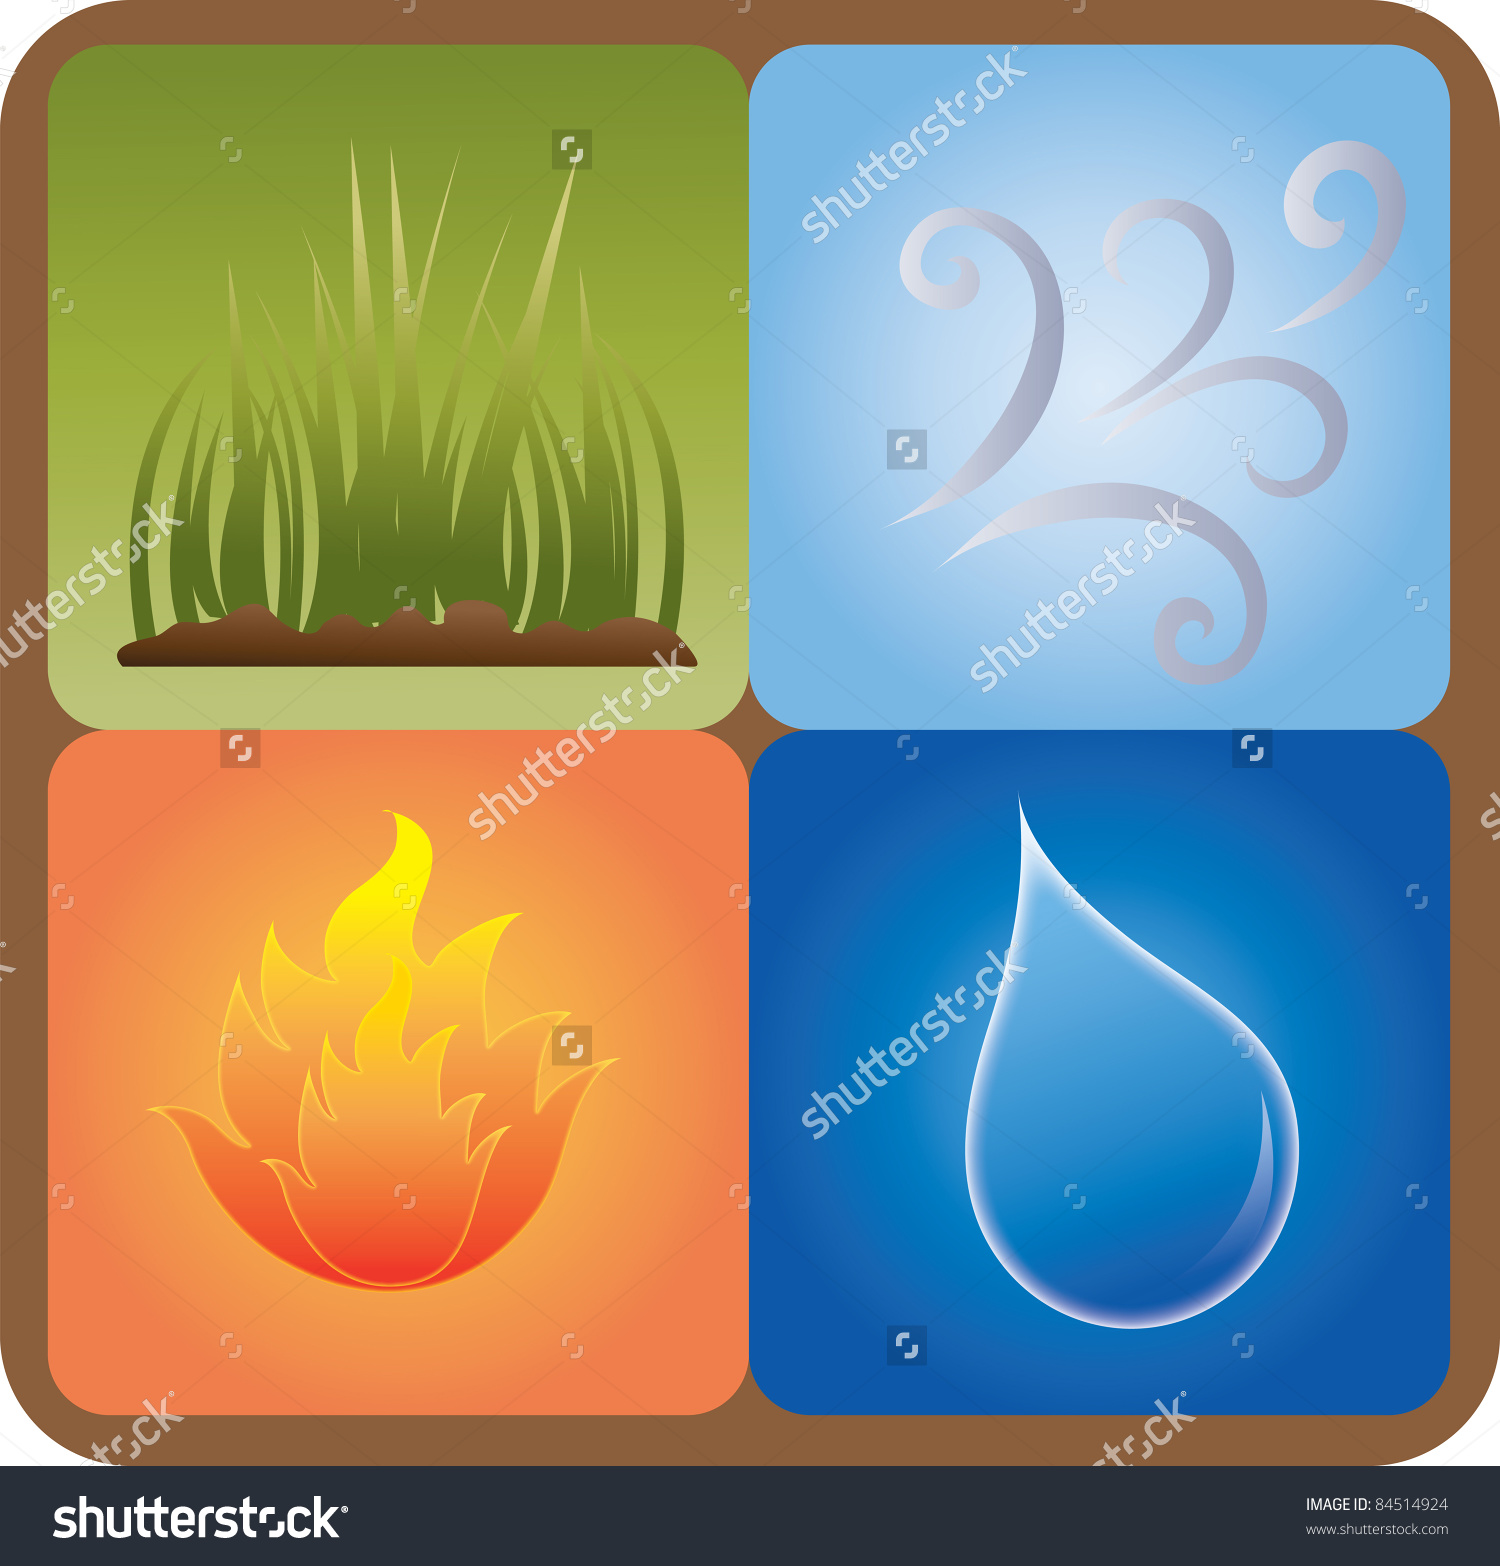 Clip Art Illustration Four Elements Nature Stock Illustration.